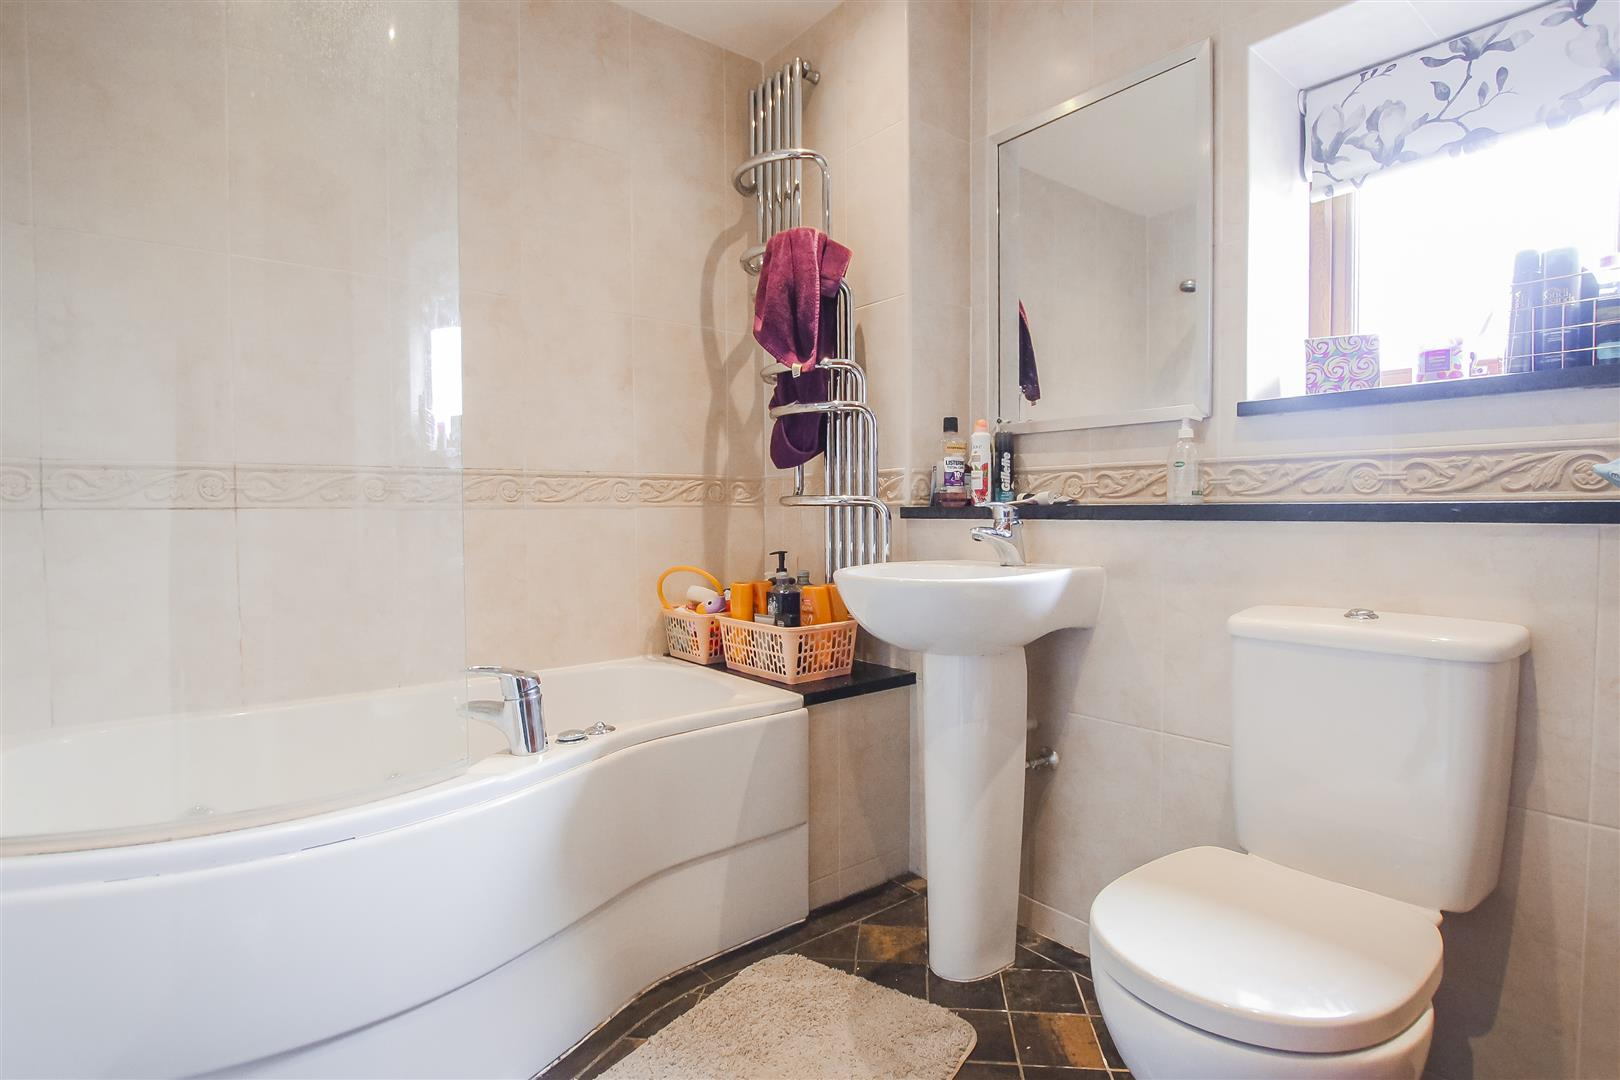 5 Bedroom Barn Conversion For Sale - Image 30